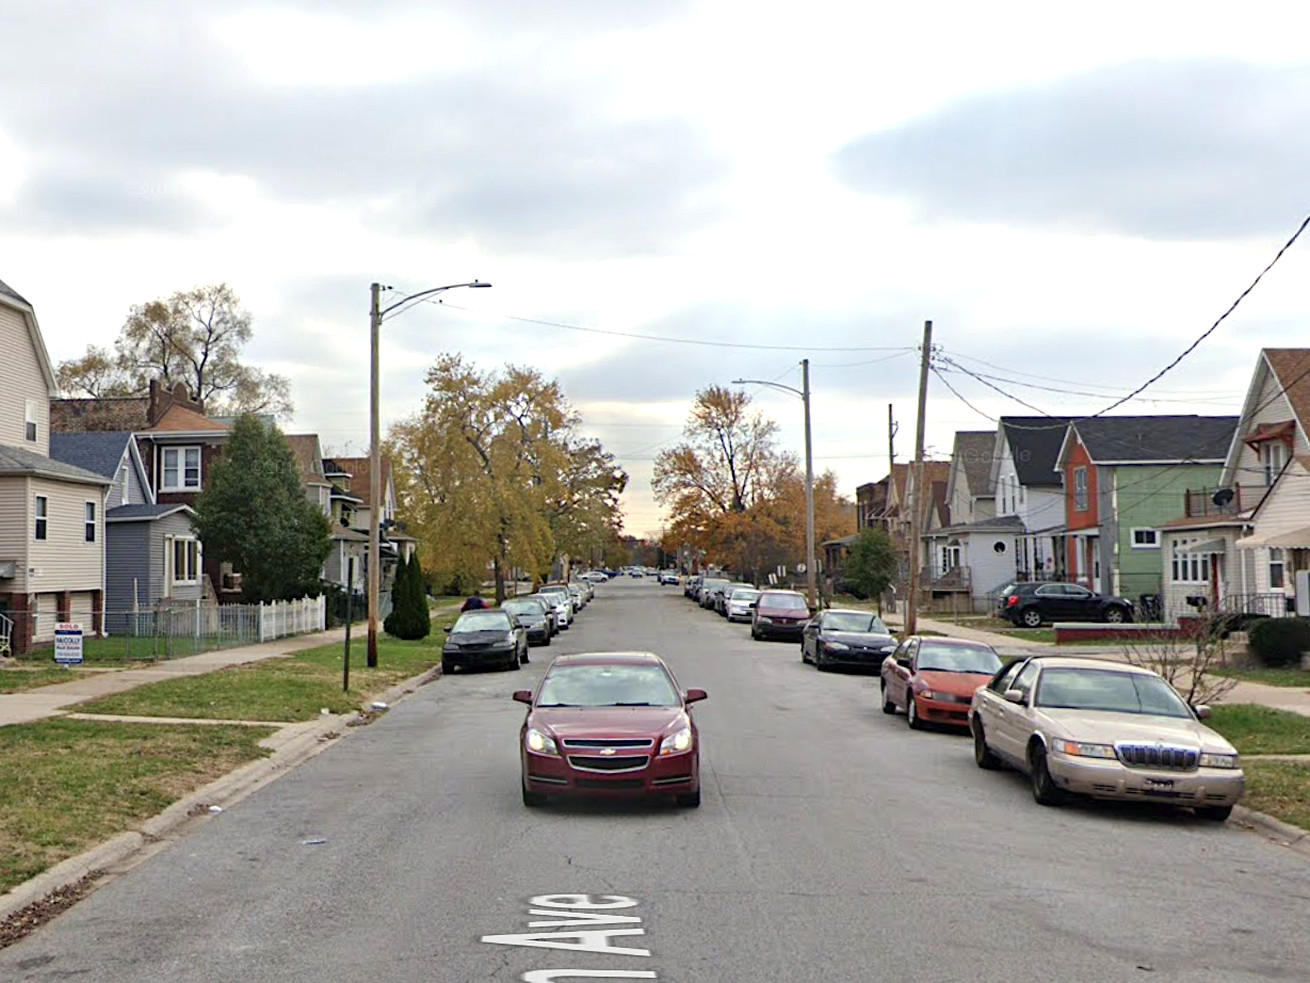 Police say a girl was hurt by stray gunfire Oct. 22, 2020, in 4500 block of Magoun Avenue in East Chicago, Indiana.